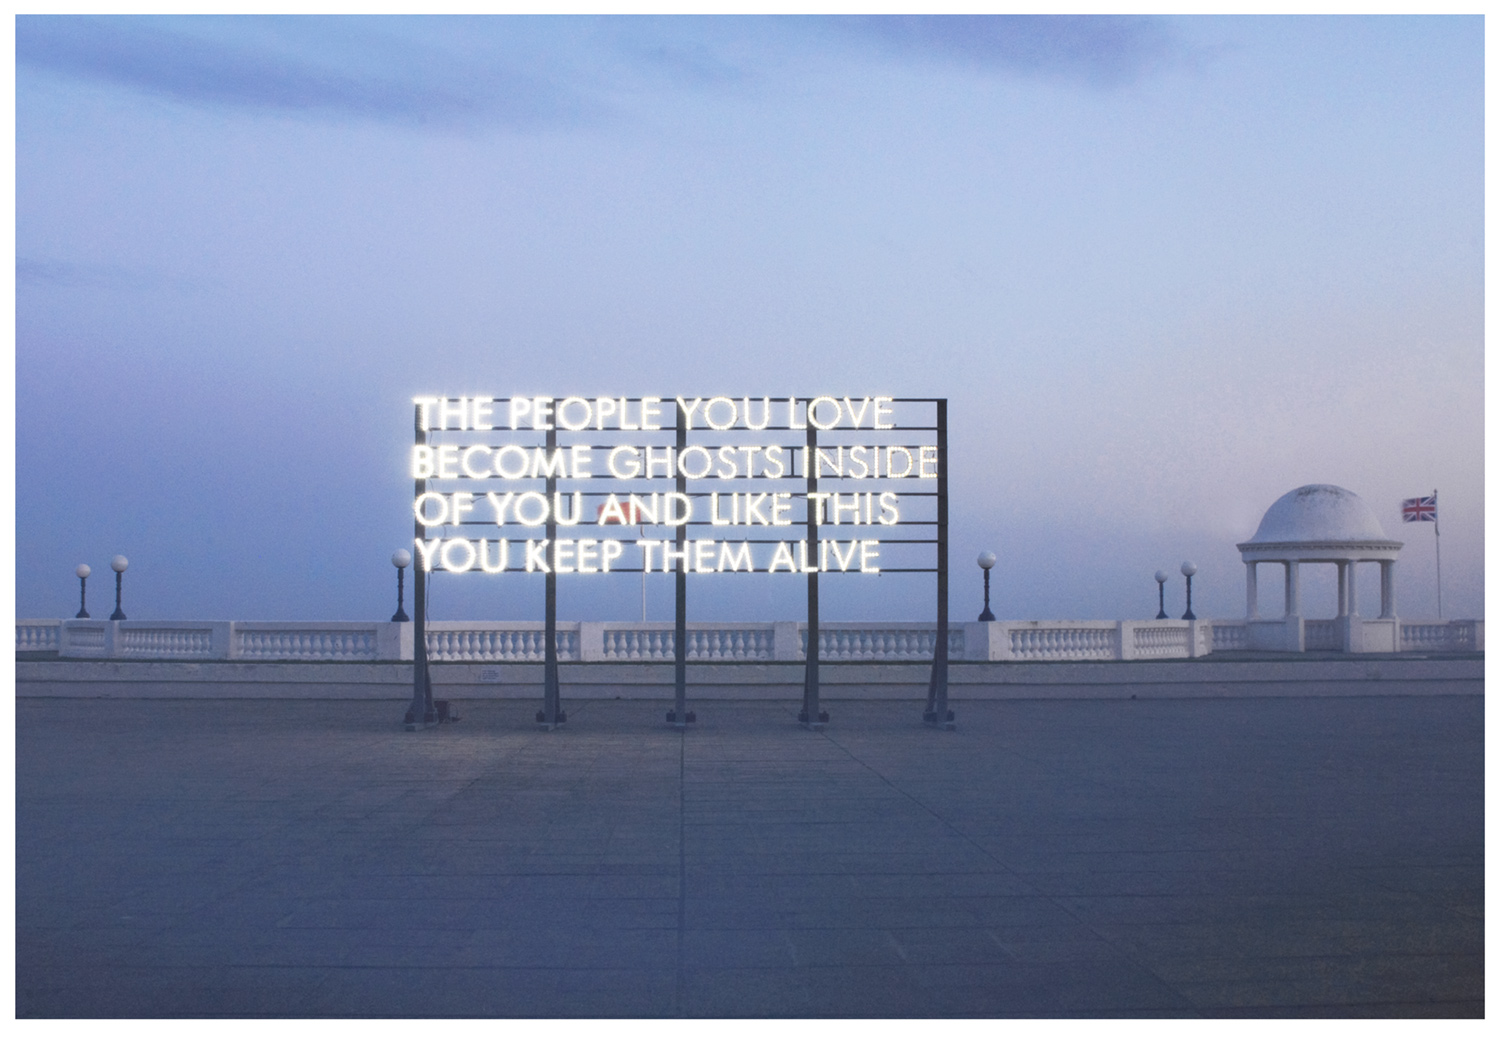 People You Love. De La Warr Pavillion, 2011.